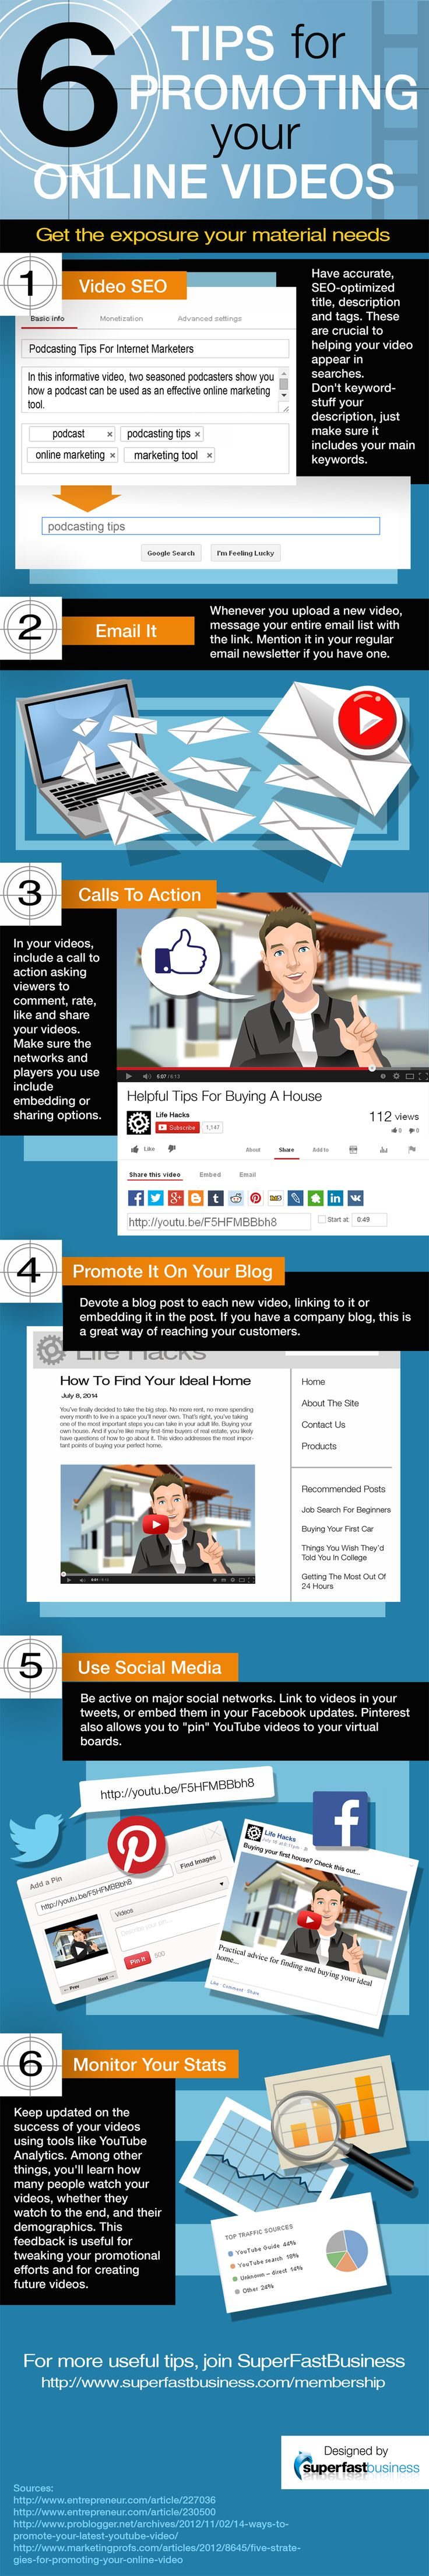 6 Tips for Promoting your Online Videos | Writers and Authors http://www.writersandauthors.info/2014/07/6-tips-for-promoting-your-online-videos.html